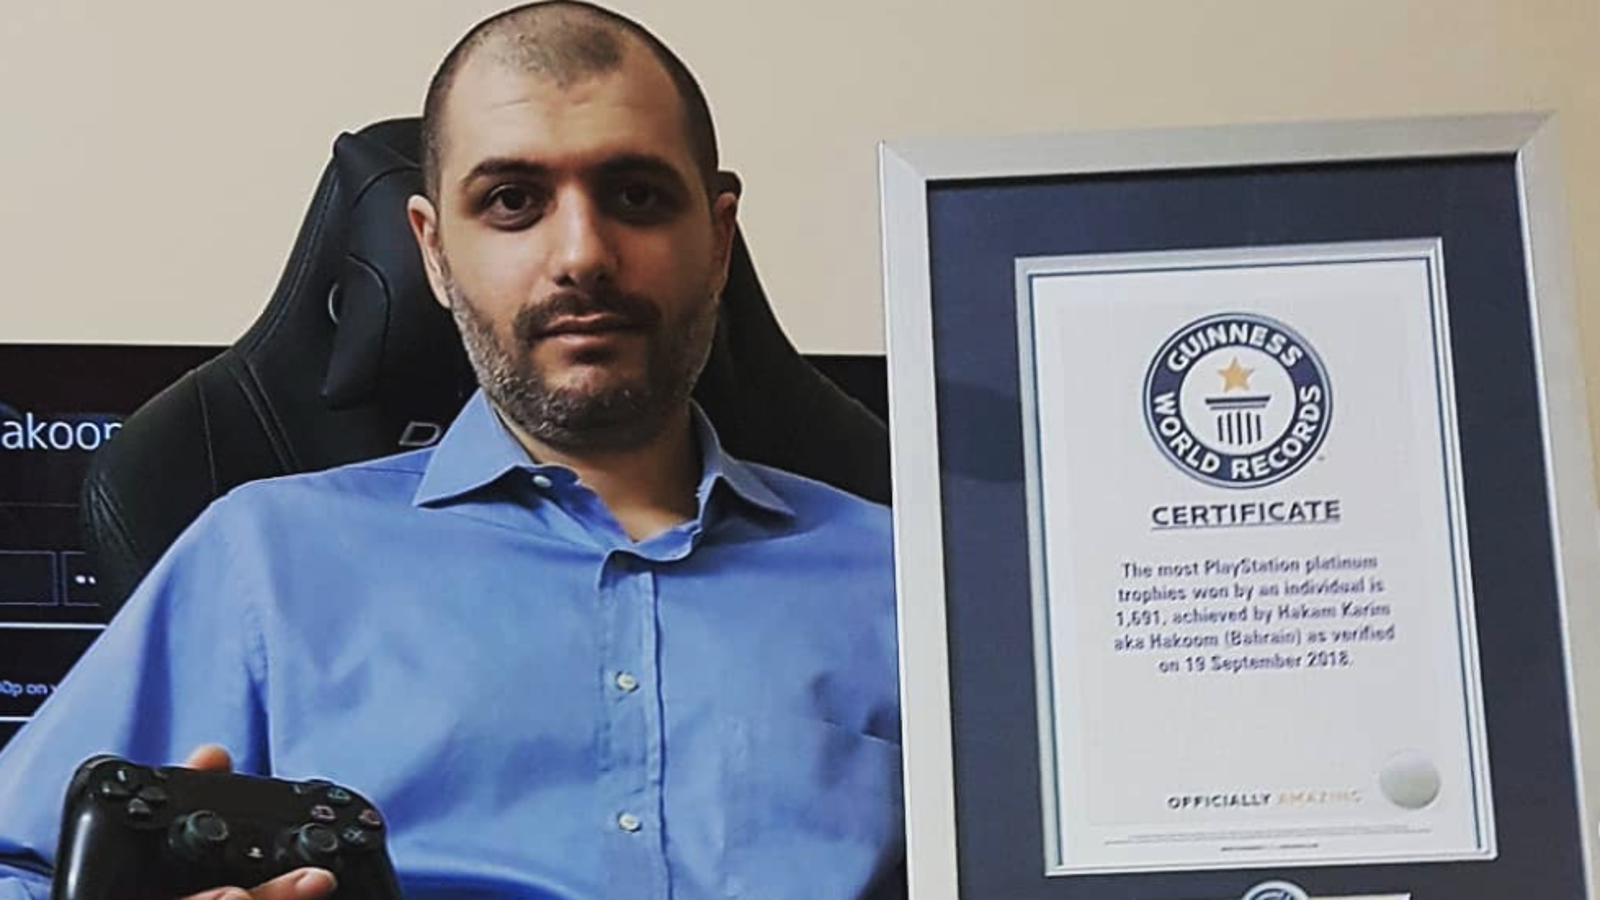 The Top PlayStation Trophy Hunter Is Now Bagging 300 Platinums A Year